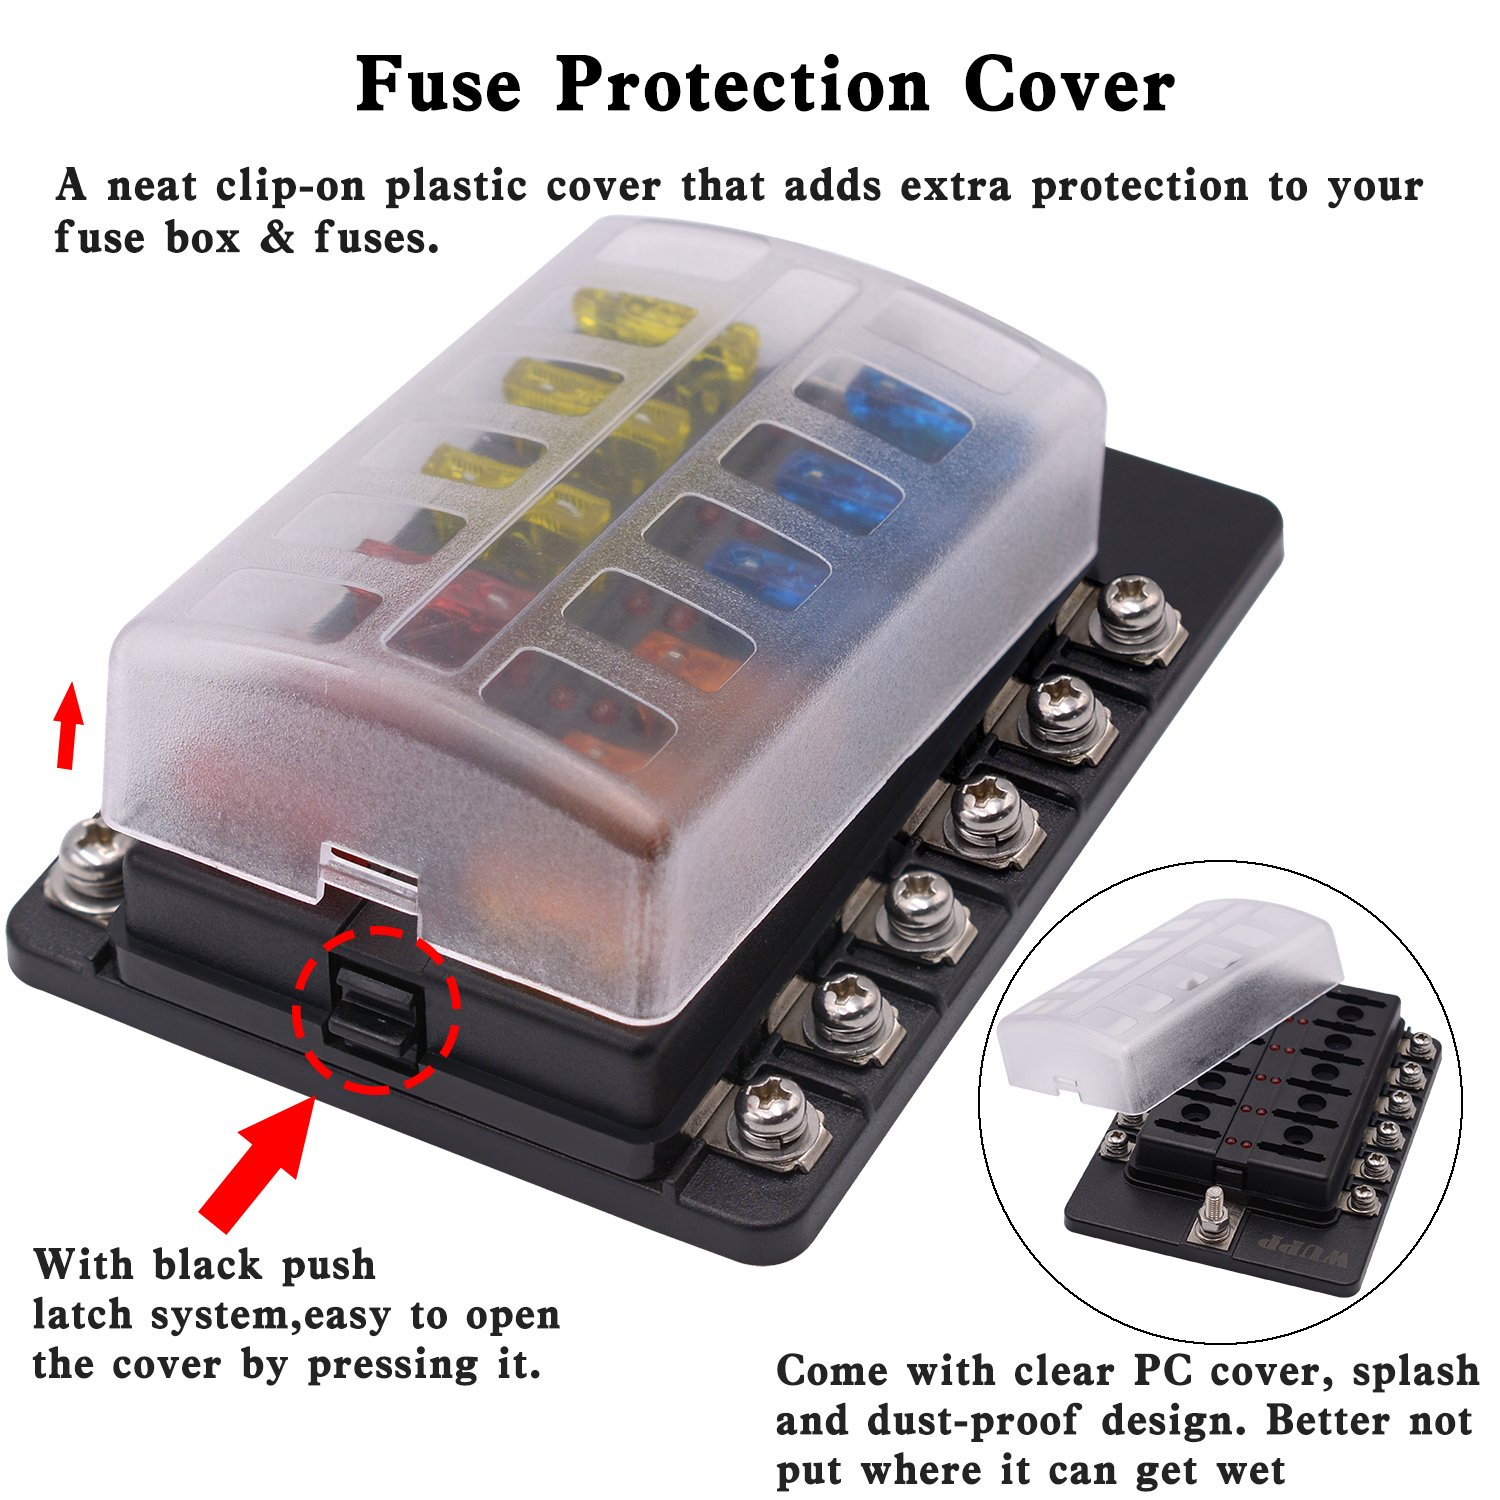 Blade Fuse Box Holder With Led Warning Indicator Damp Machine Proof Cover Block For Car Boat Marine Rv Truck Dc 32v Screw Terminal12 Way